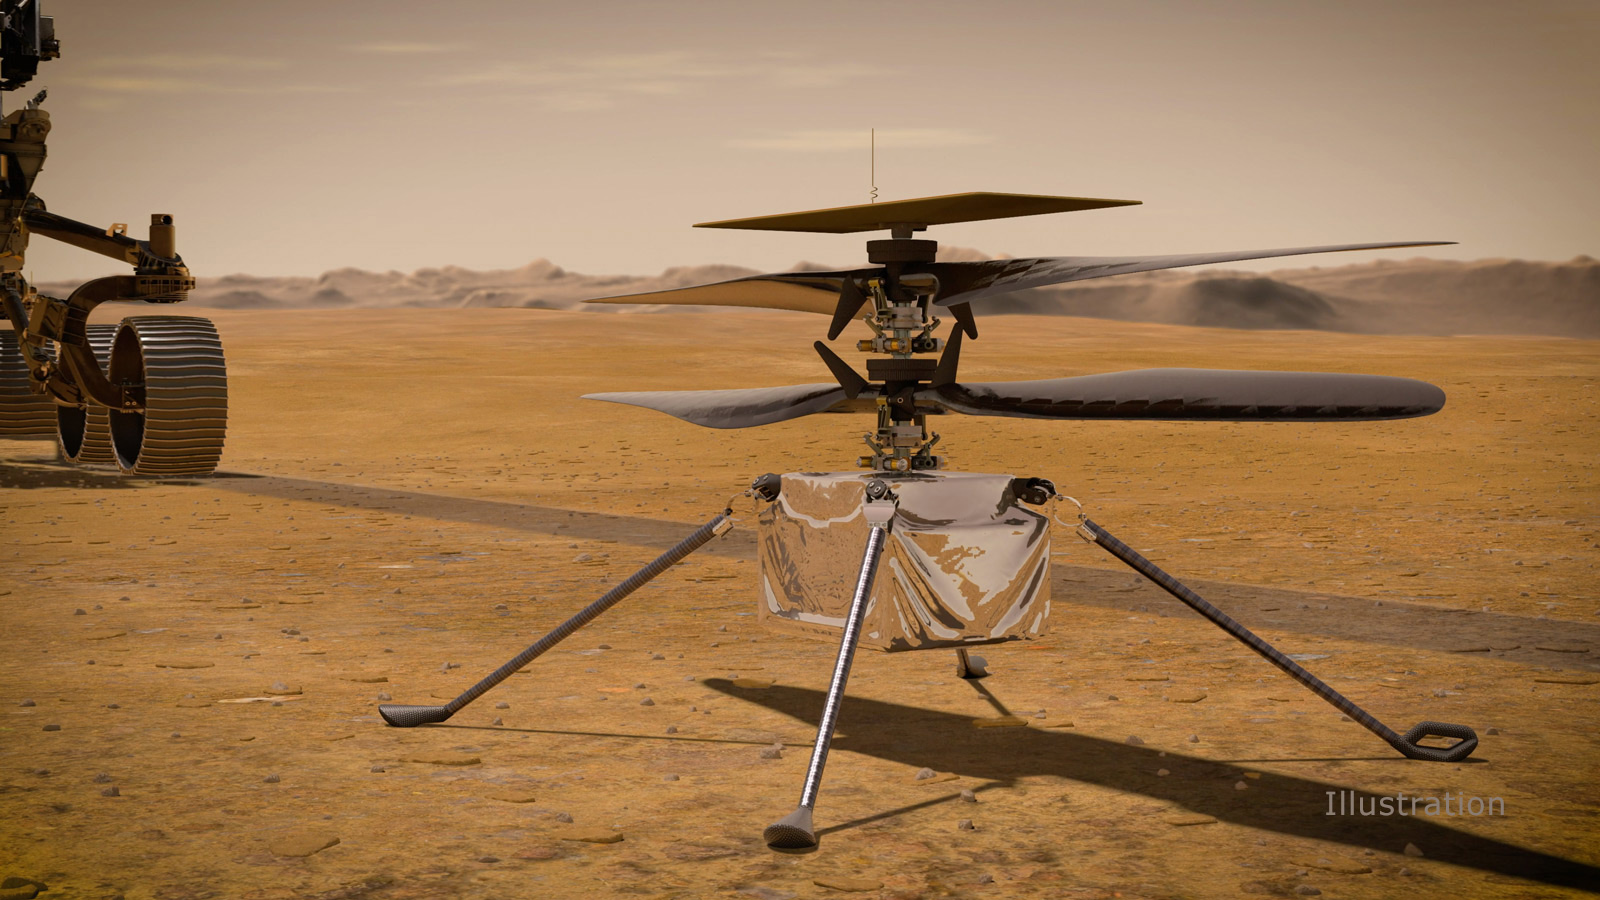 The helicopter with four long blades, a cube-shape body and long skinny legs sites in the forground with the wheels of the rover visible to its right.